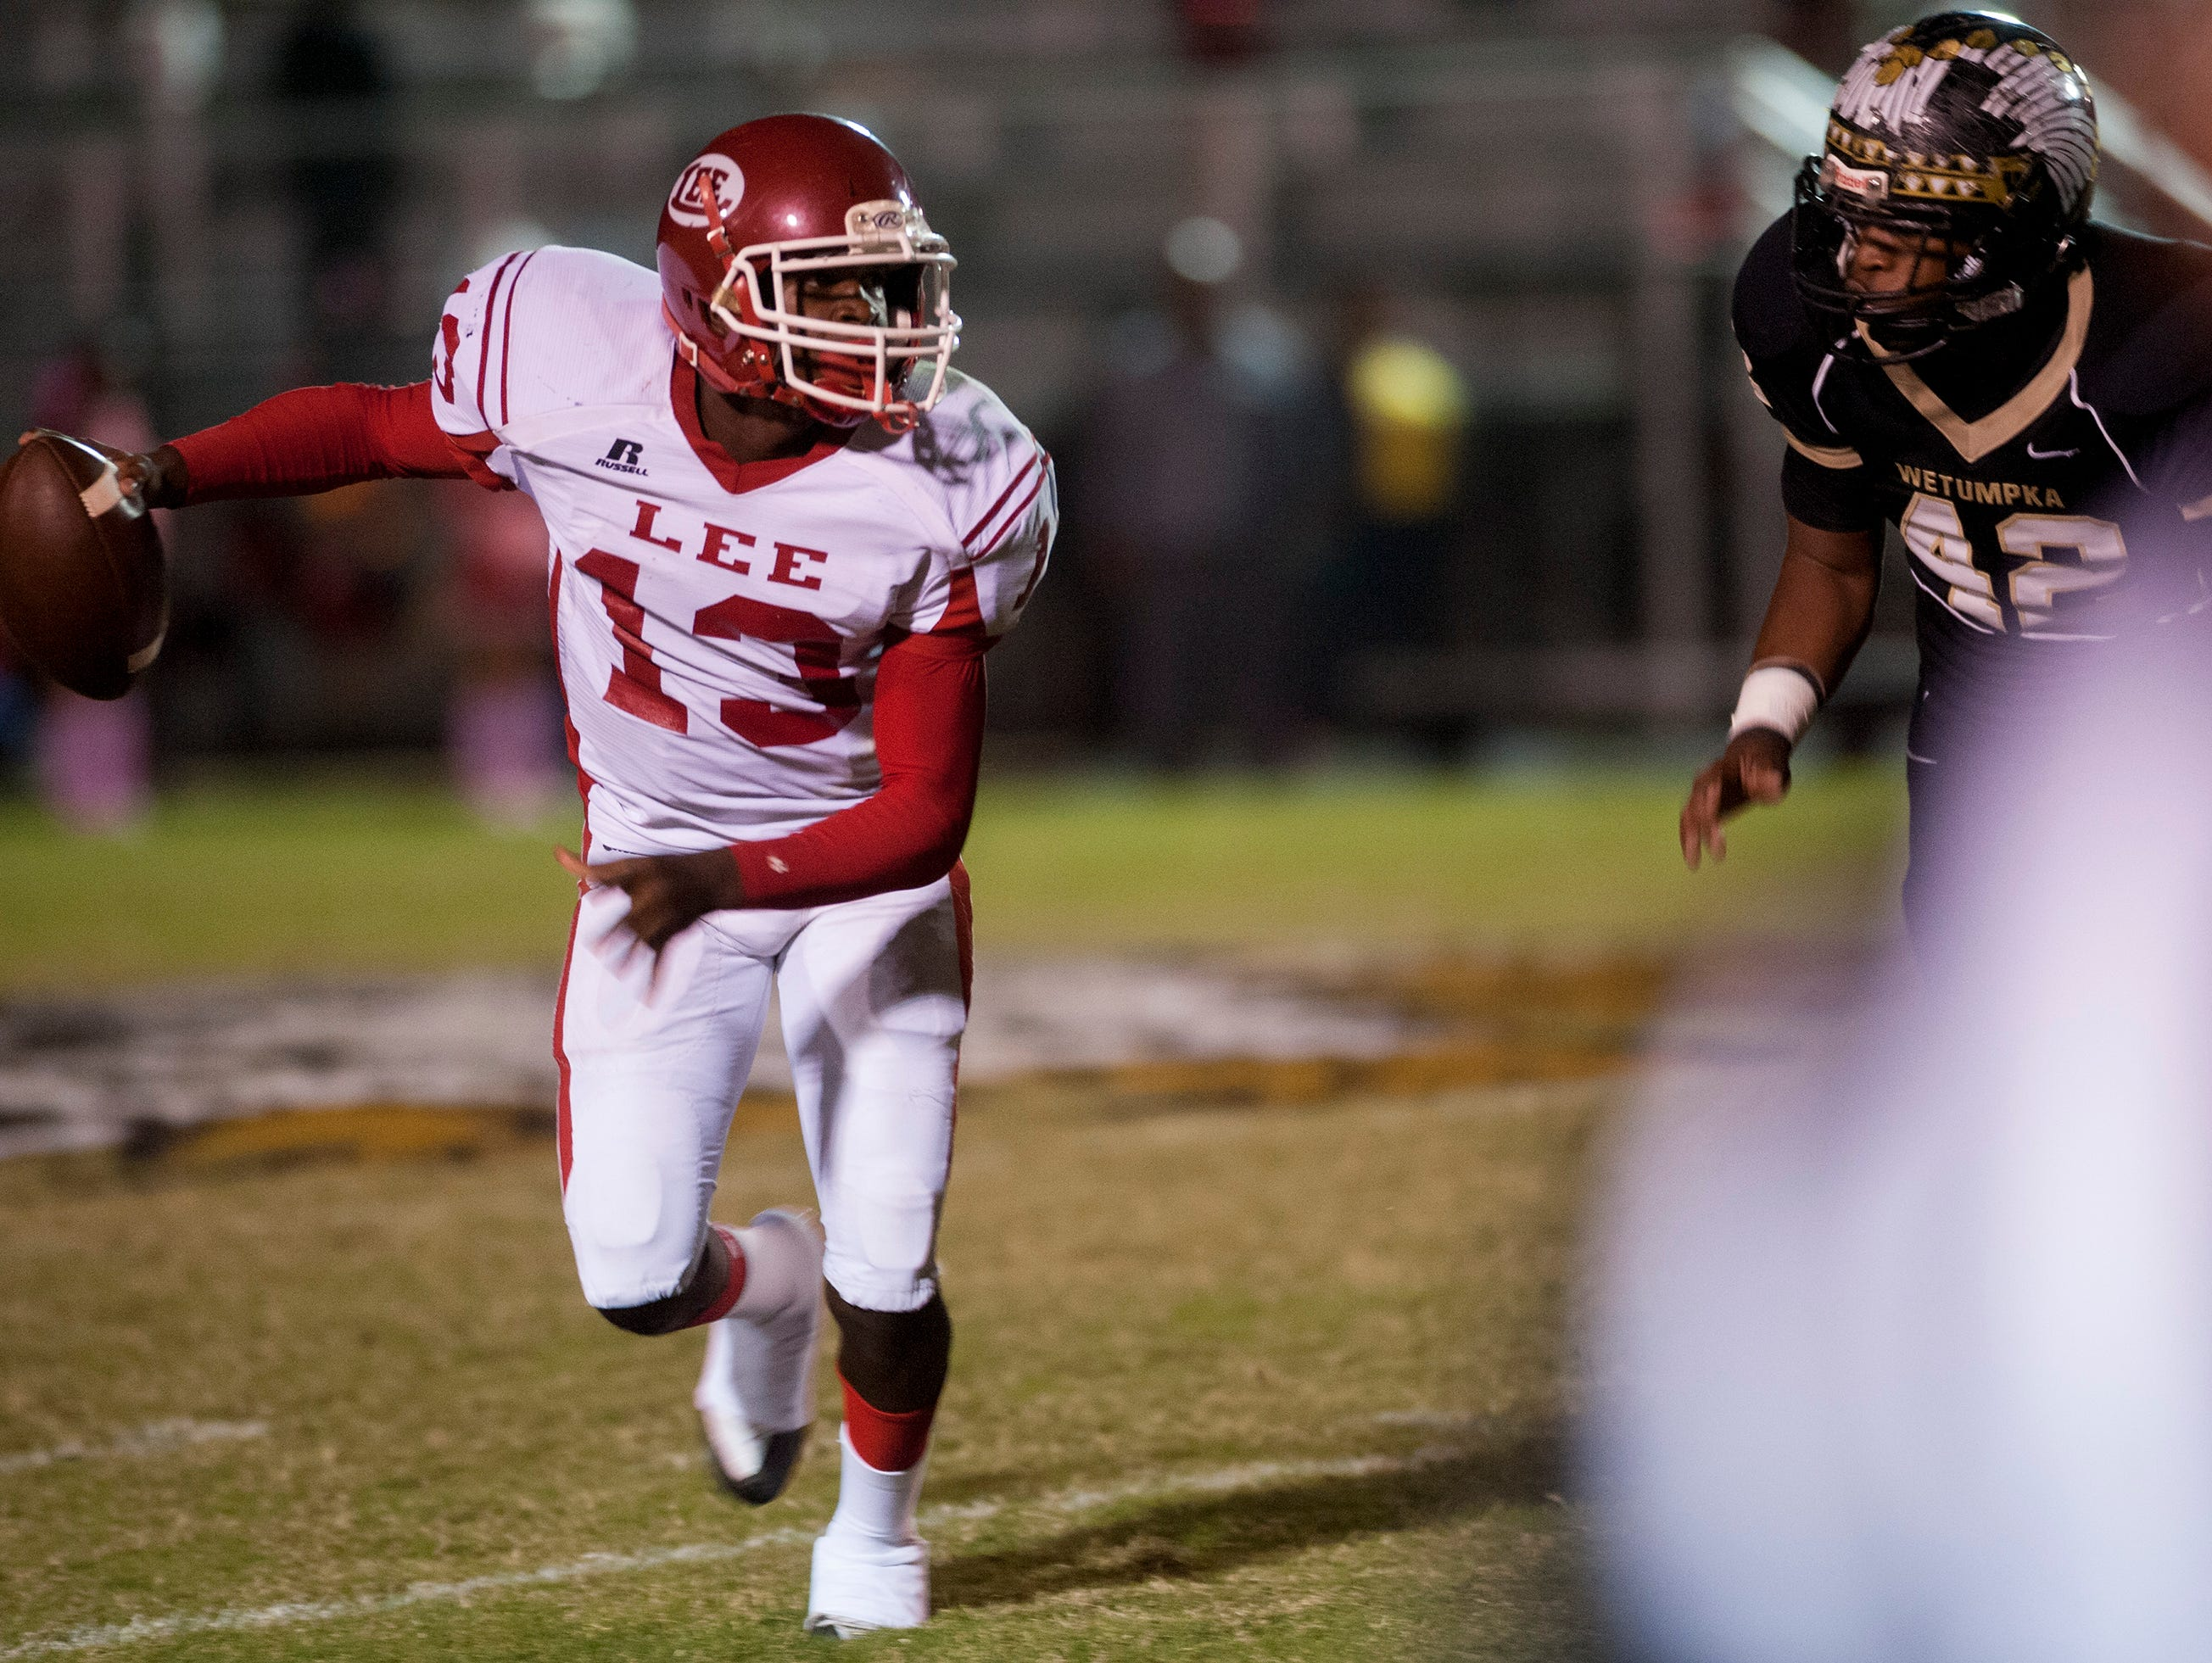 Lee quarterback Shaquille Johnson (13) looks to pass against Wetumpka's Travarris Bozeman (42) at Hohenberg Field in Wetumpka, Ala. on Friday October 30, 2015. (Mickey Welsh / Montgomery Advertiser)